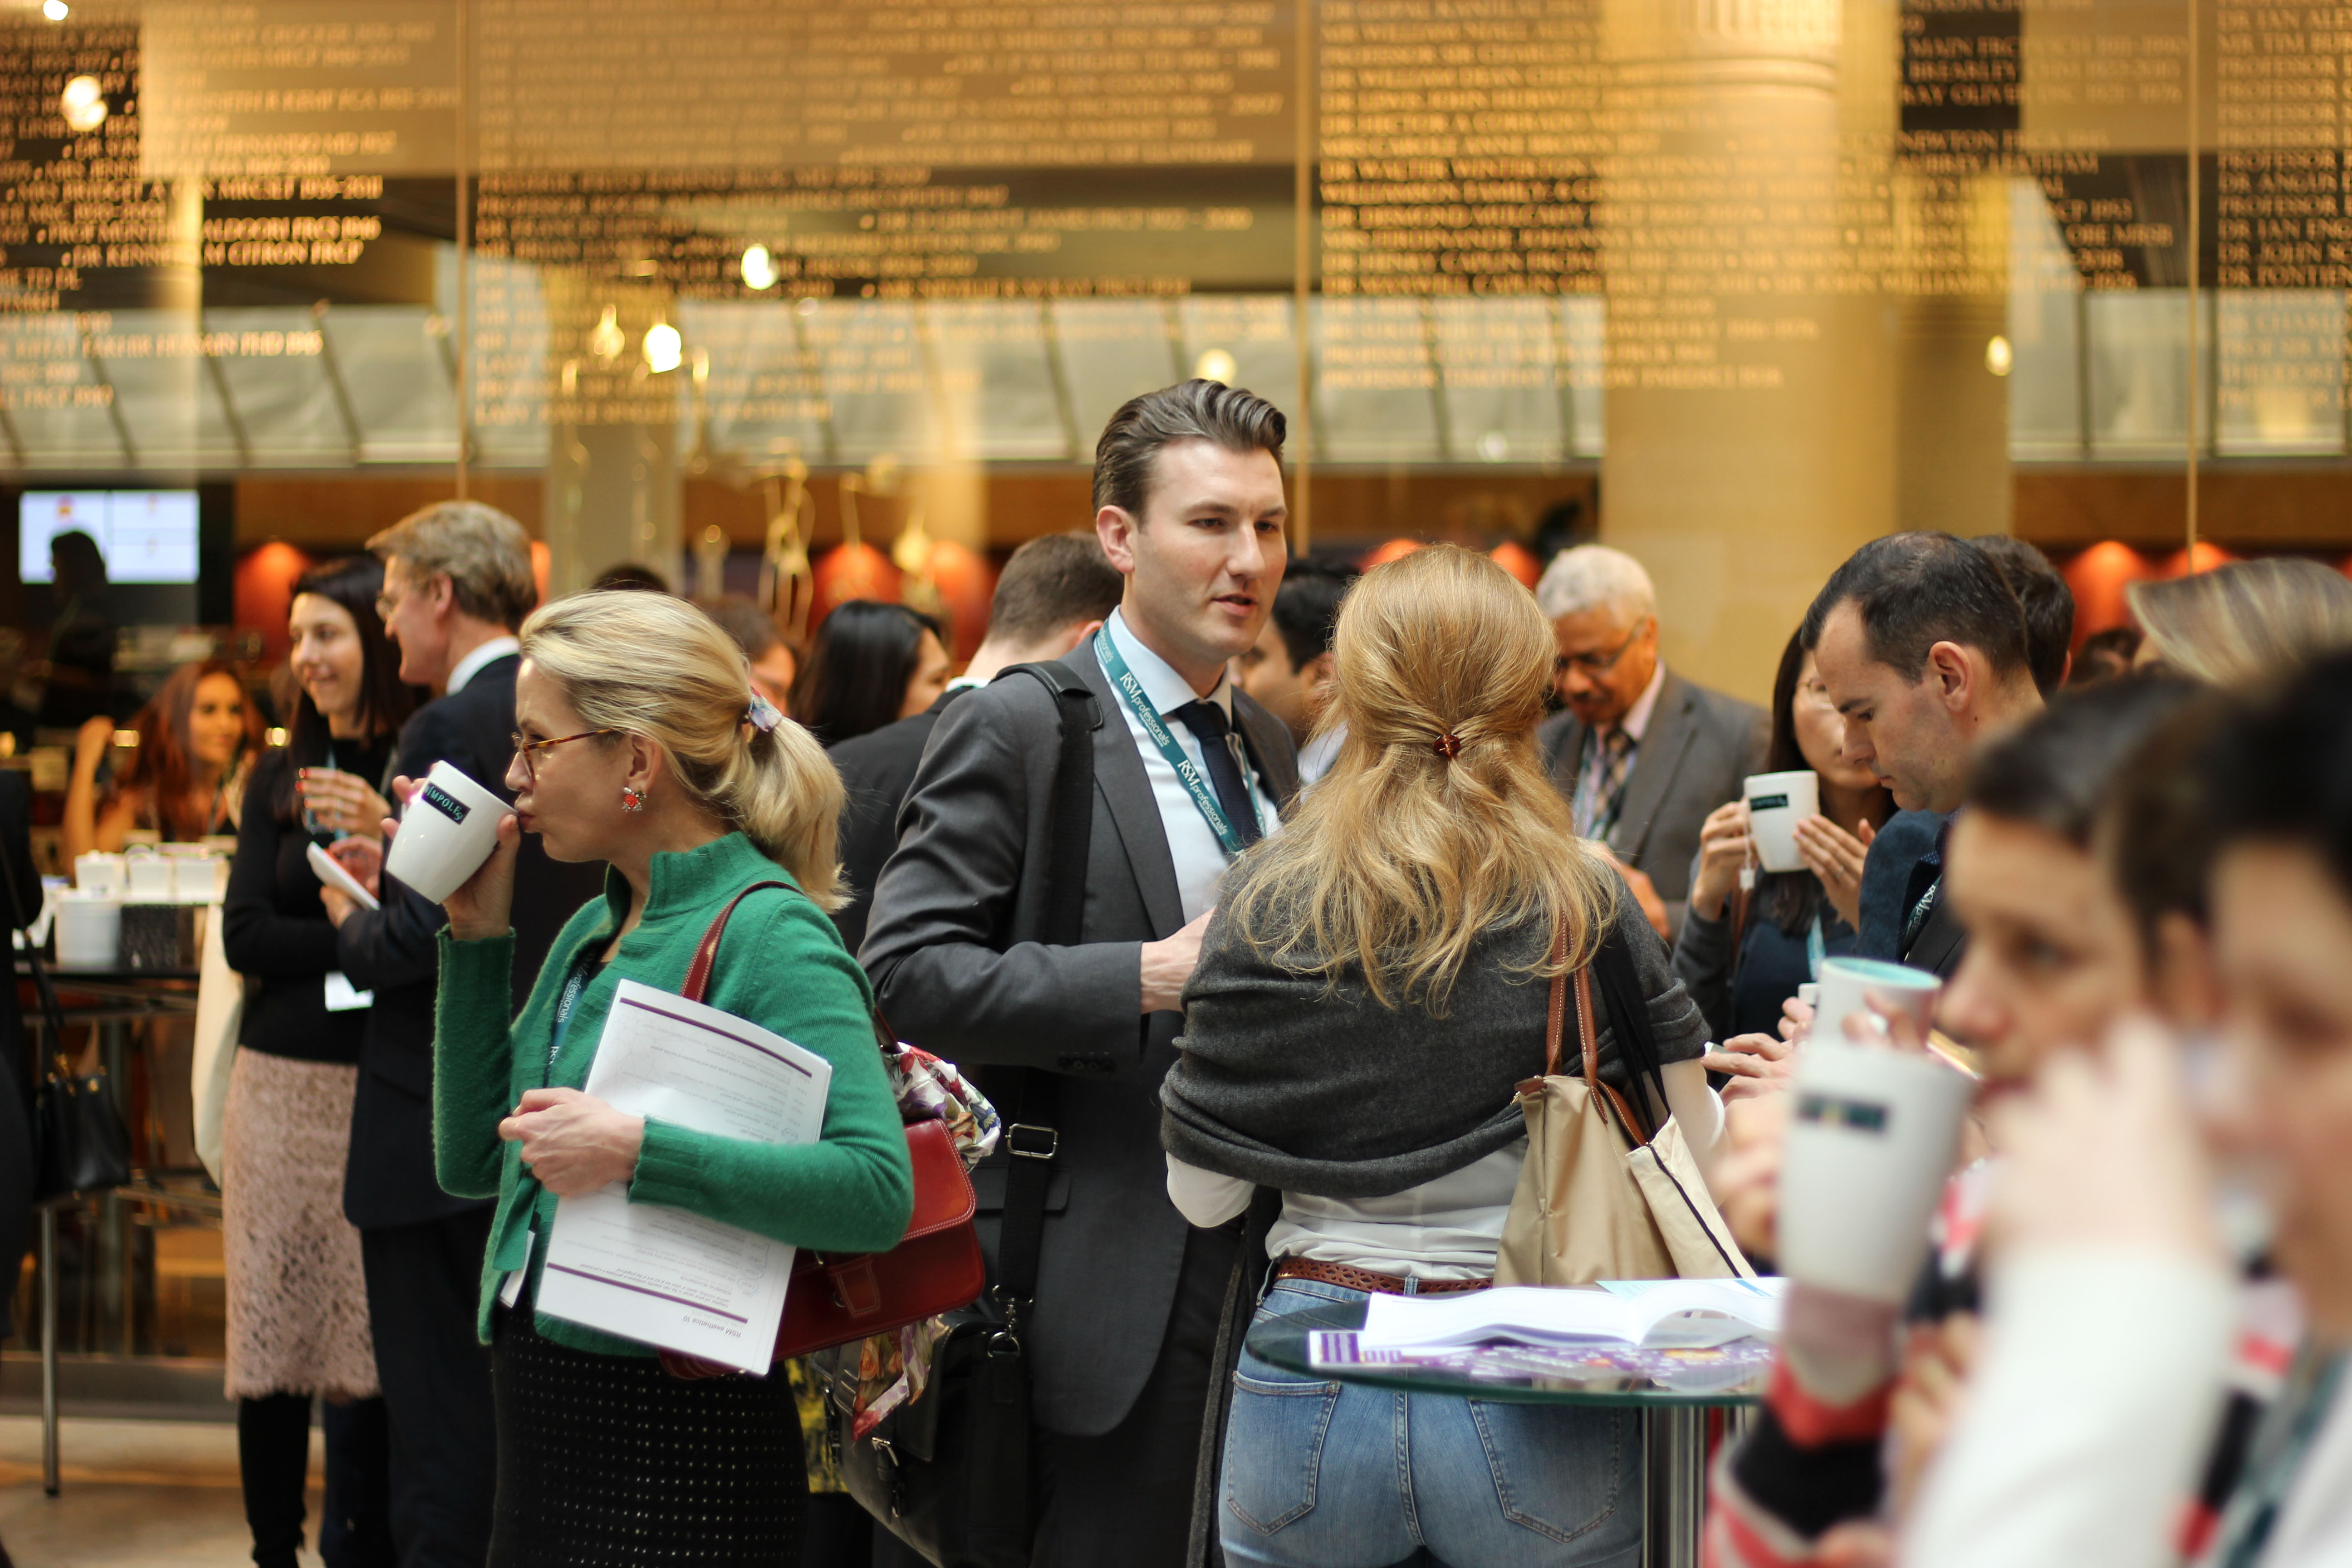 Networking at events